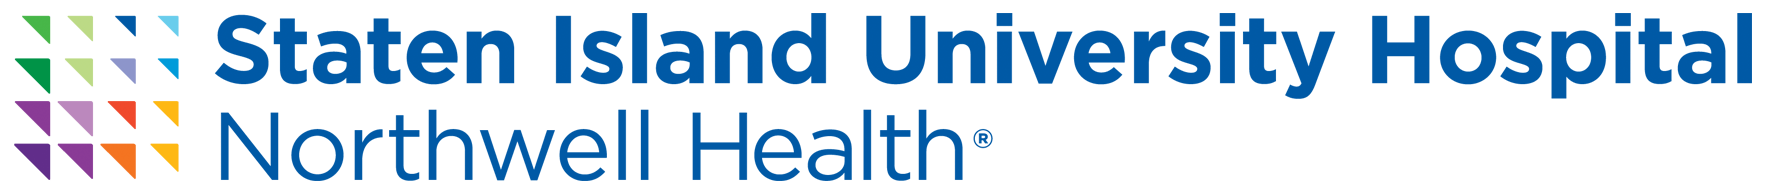 Staten Island University Hospital Northwell Health